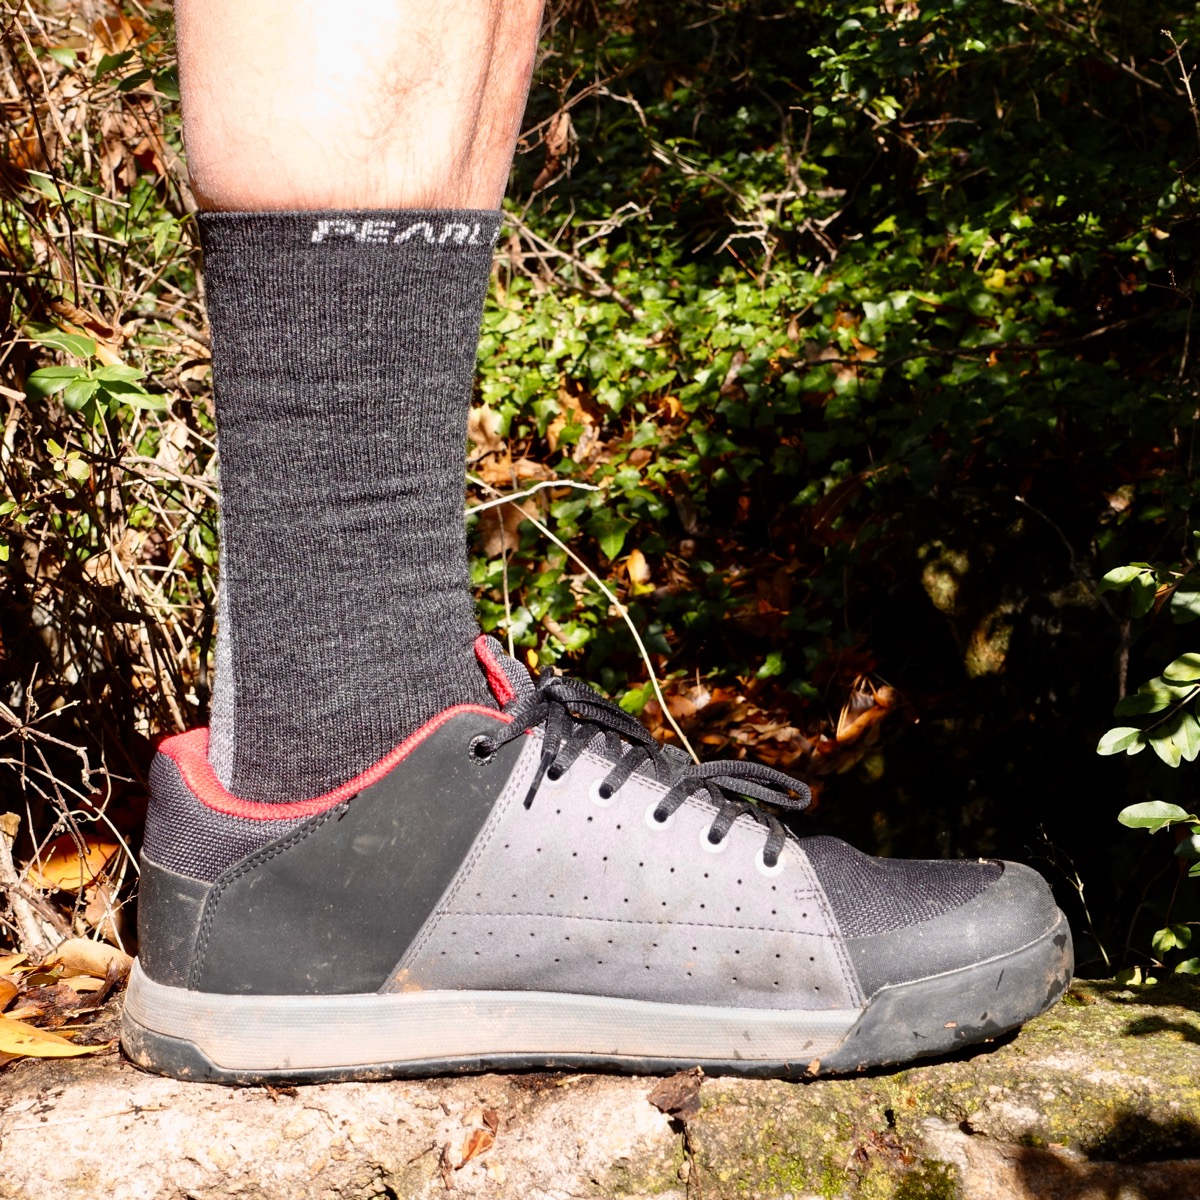 18338819b9c46 How to Choose the Best Mountain Bike Socks for the Job ...